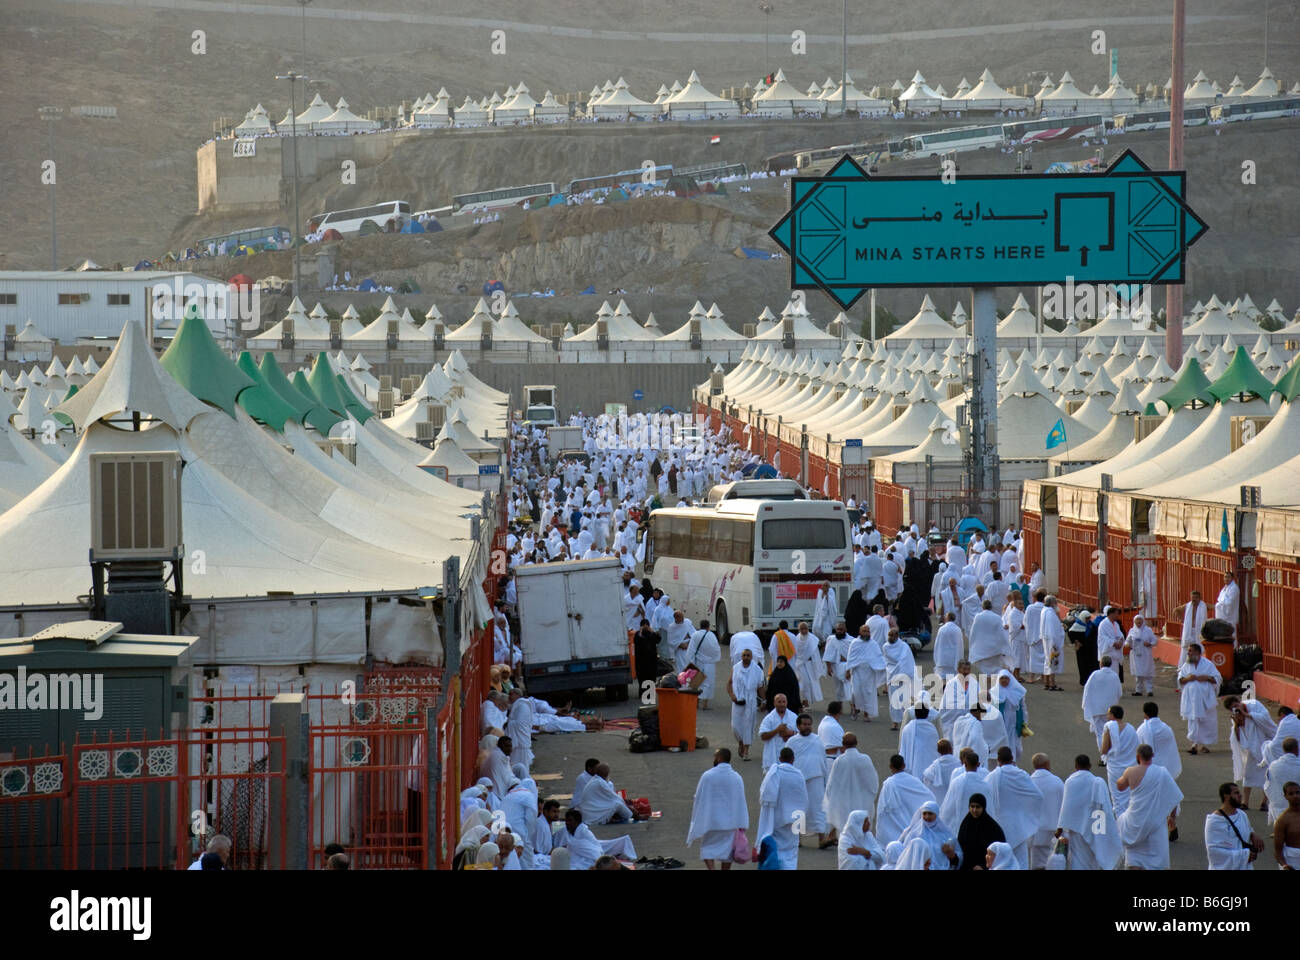 Muslim pilgrims arriving the european part of the tent village Mina on the first day of hajj Makkah Saudi Arabia & Muslim pilgrims arriving the european part of the tent village ...